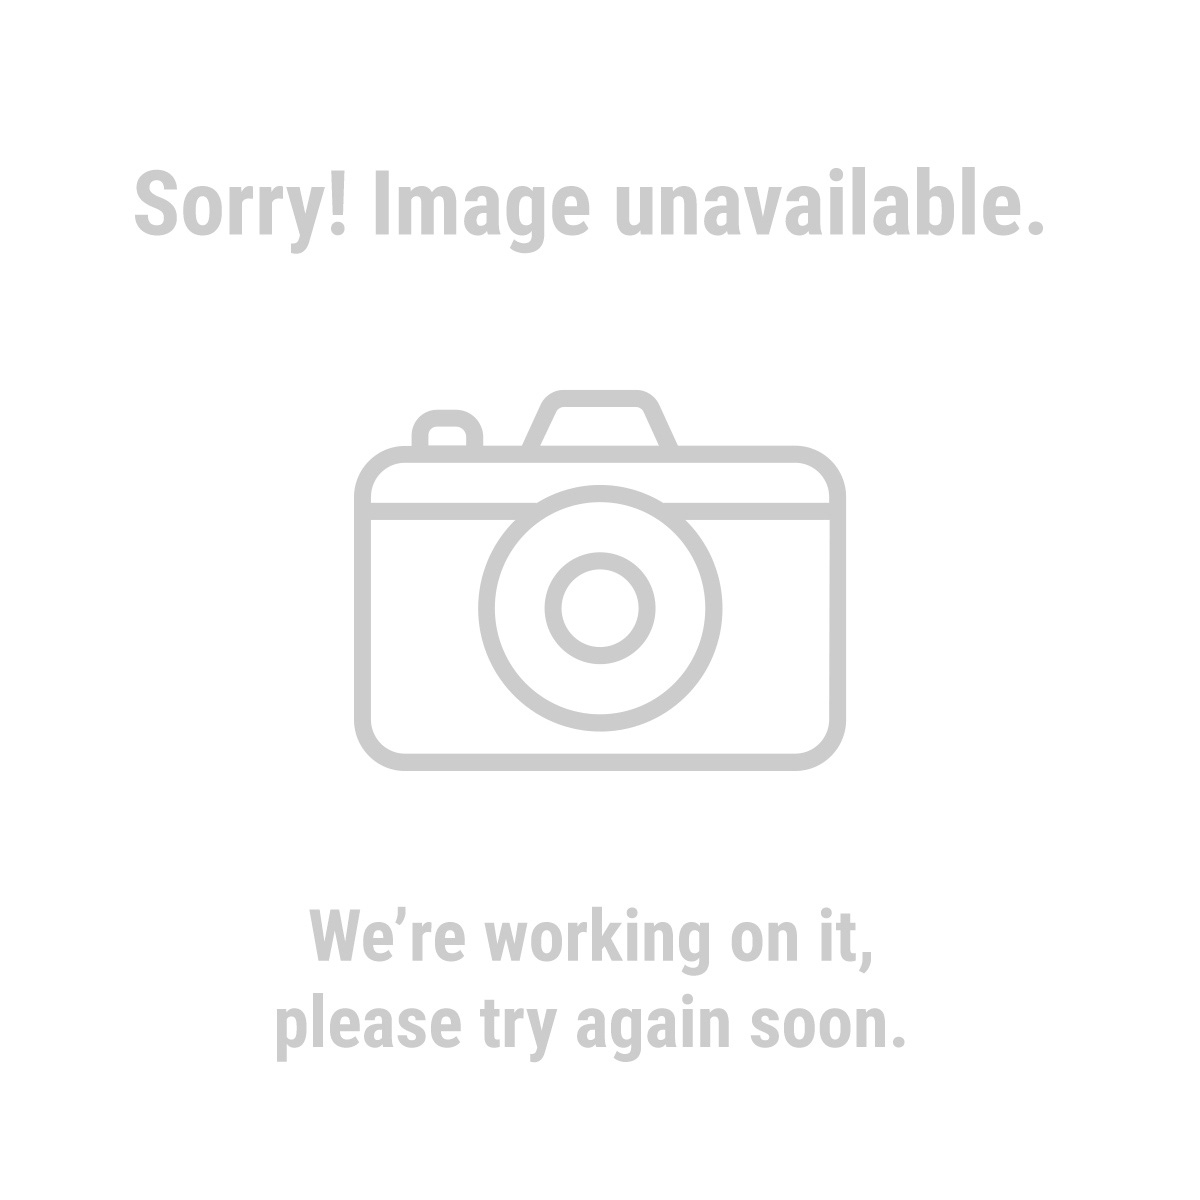 "HFT 41985 2"" x 22 yard Super Clear Packaging Tape with Dispenser"